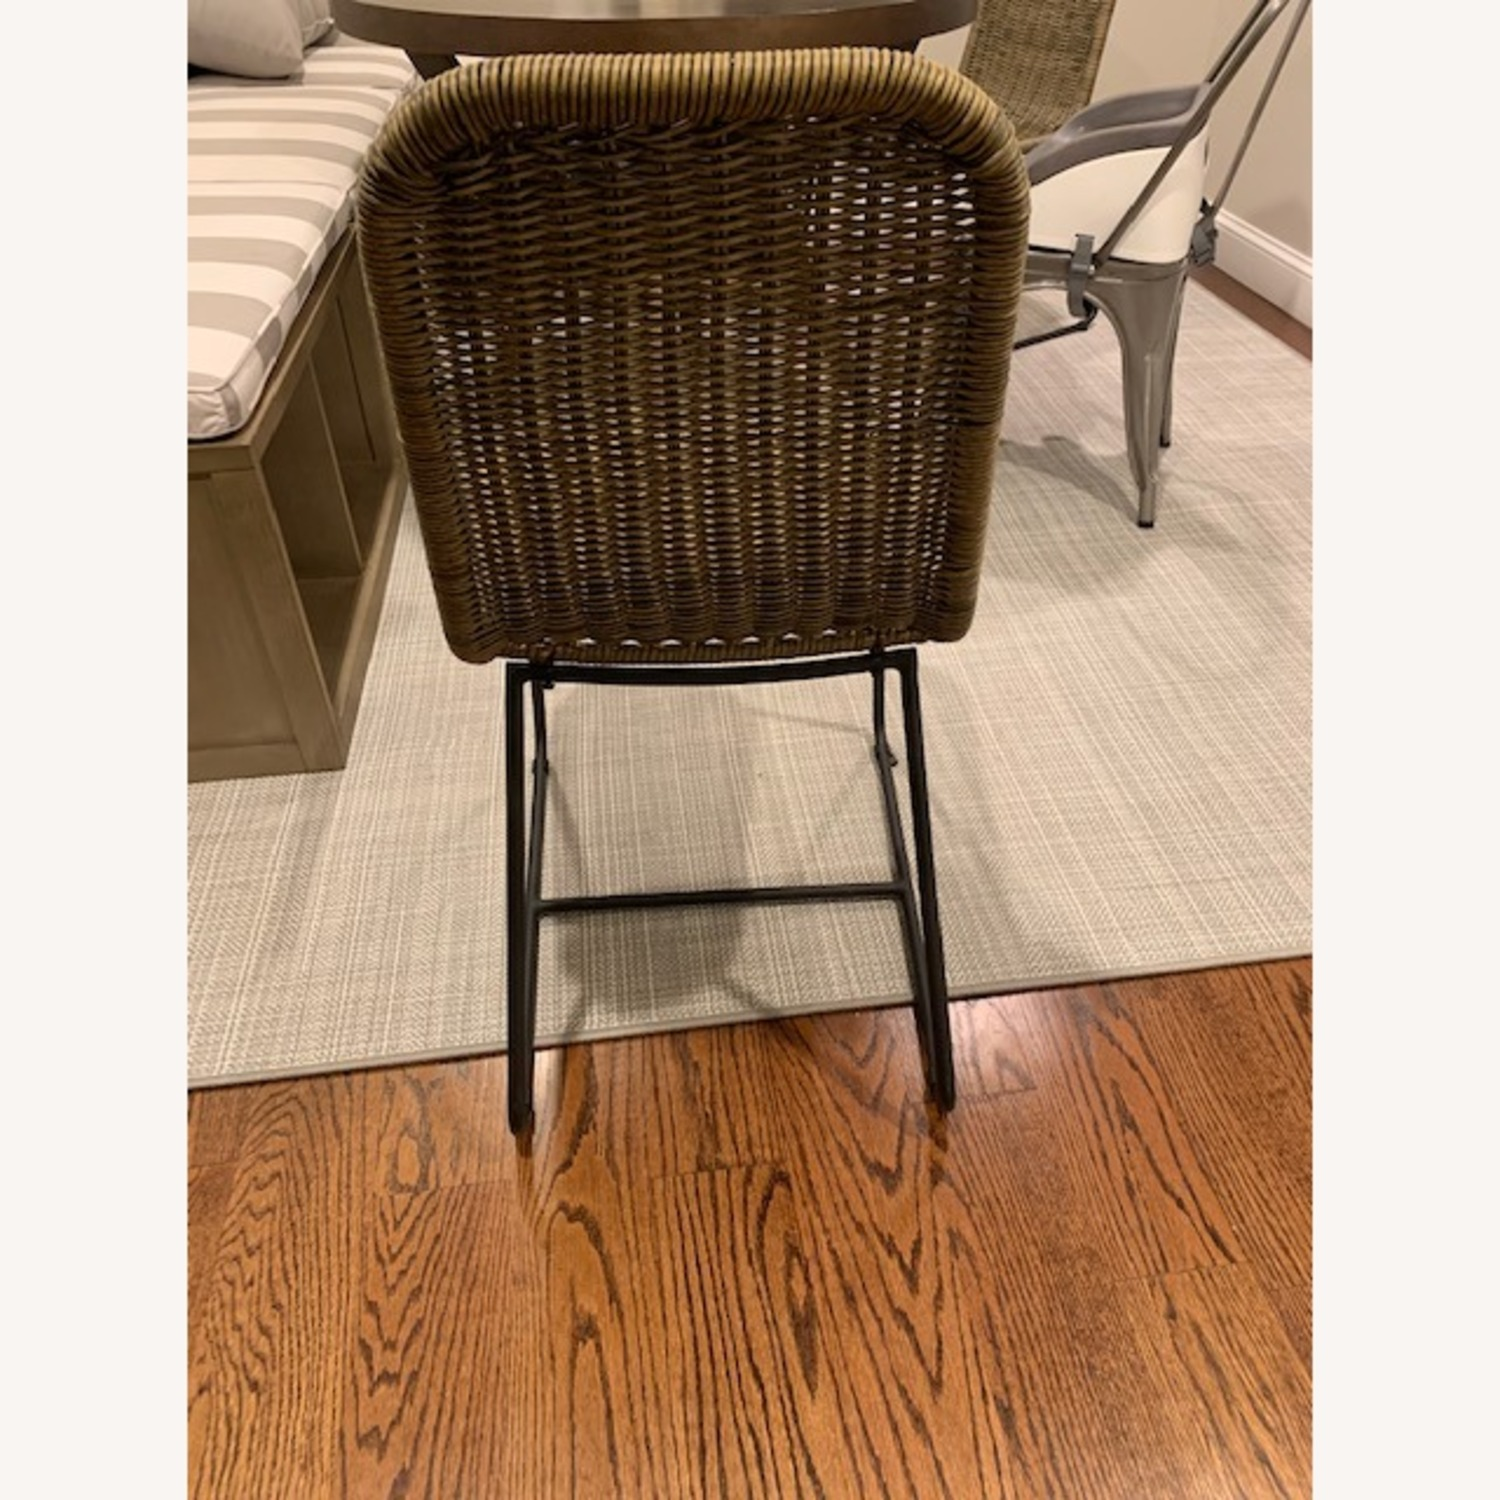 Pottery Barn Woven Grey Chairs - image-4